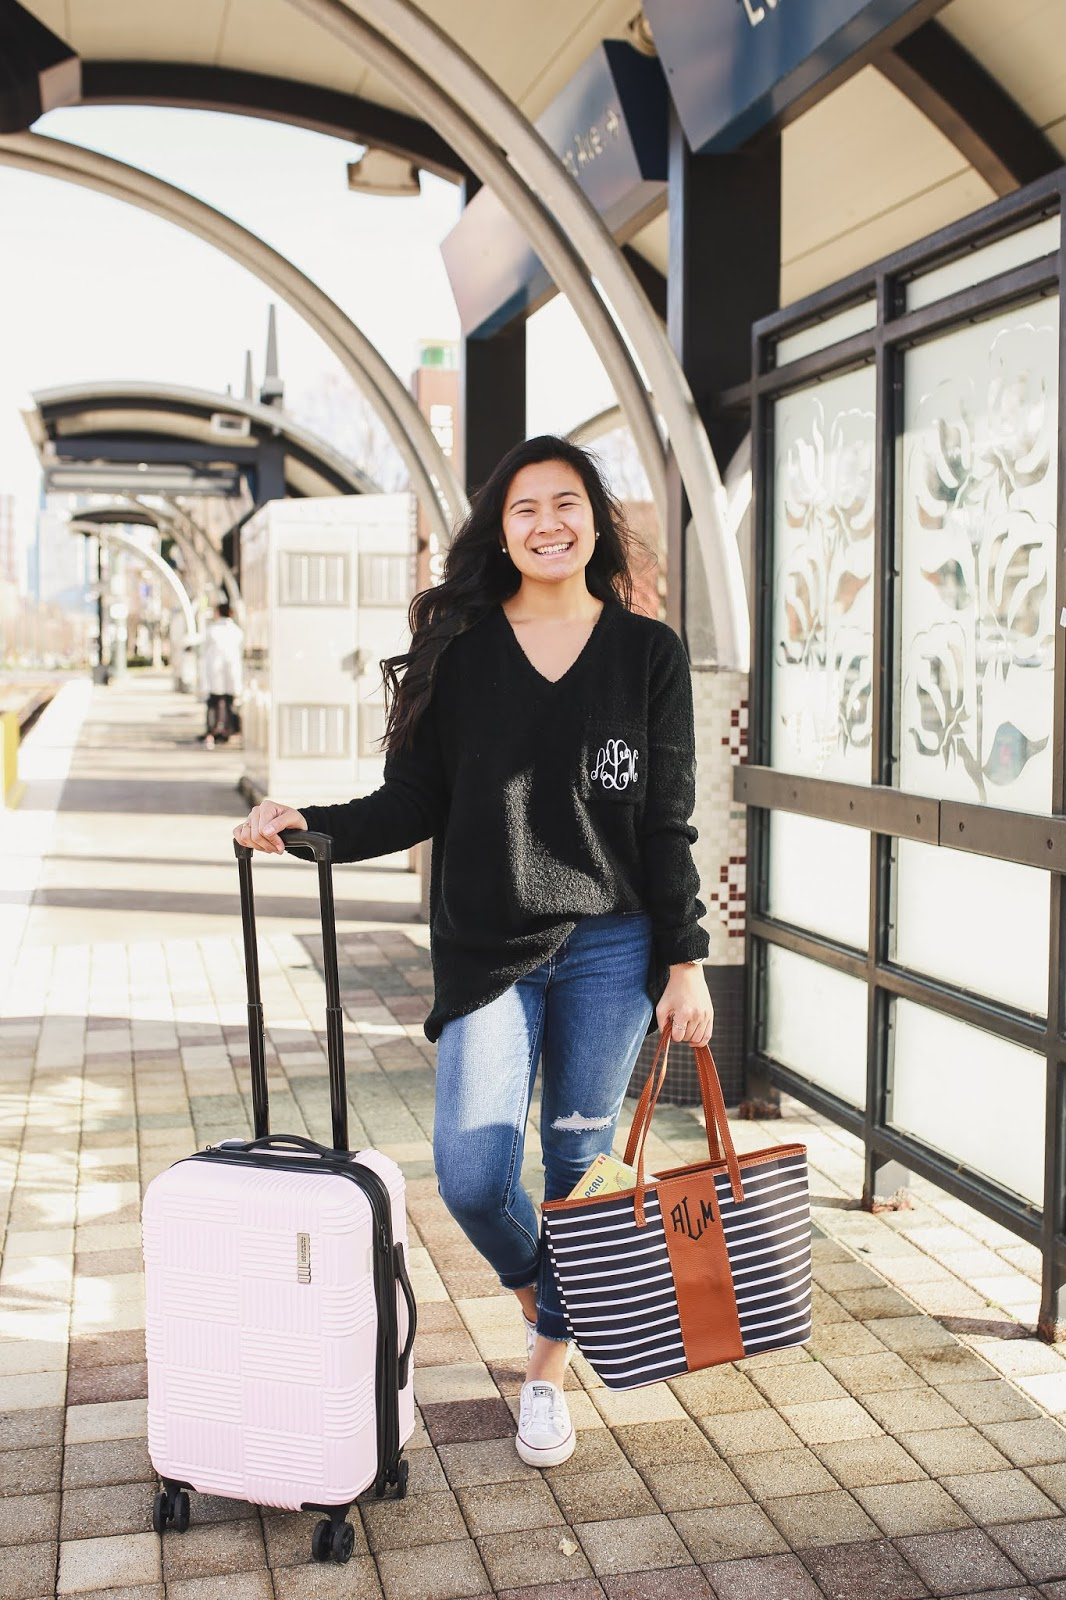 Comfy travel outfit - Marley Lilly